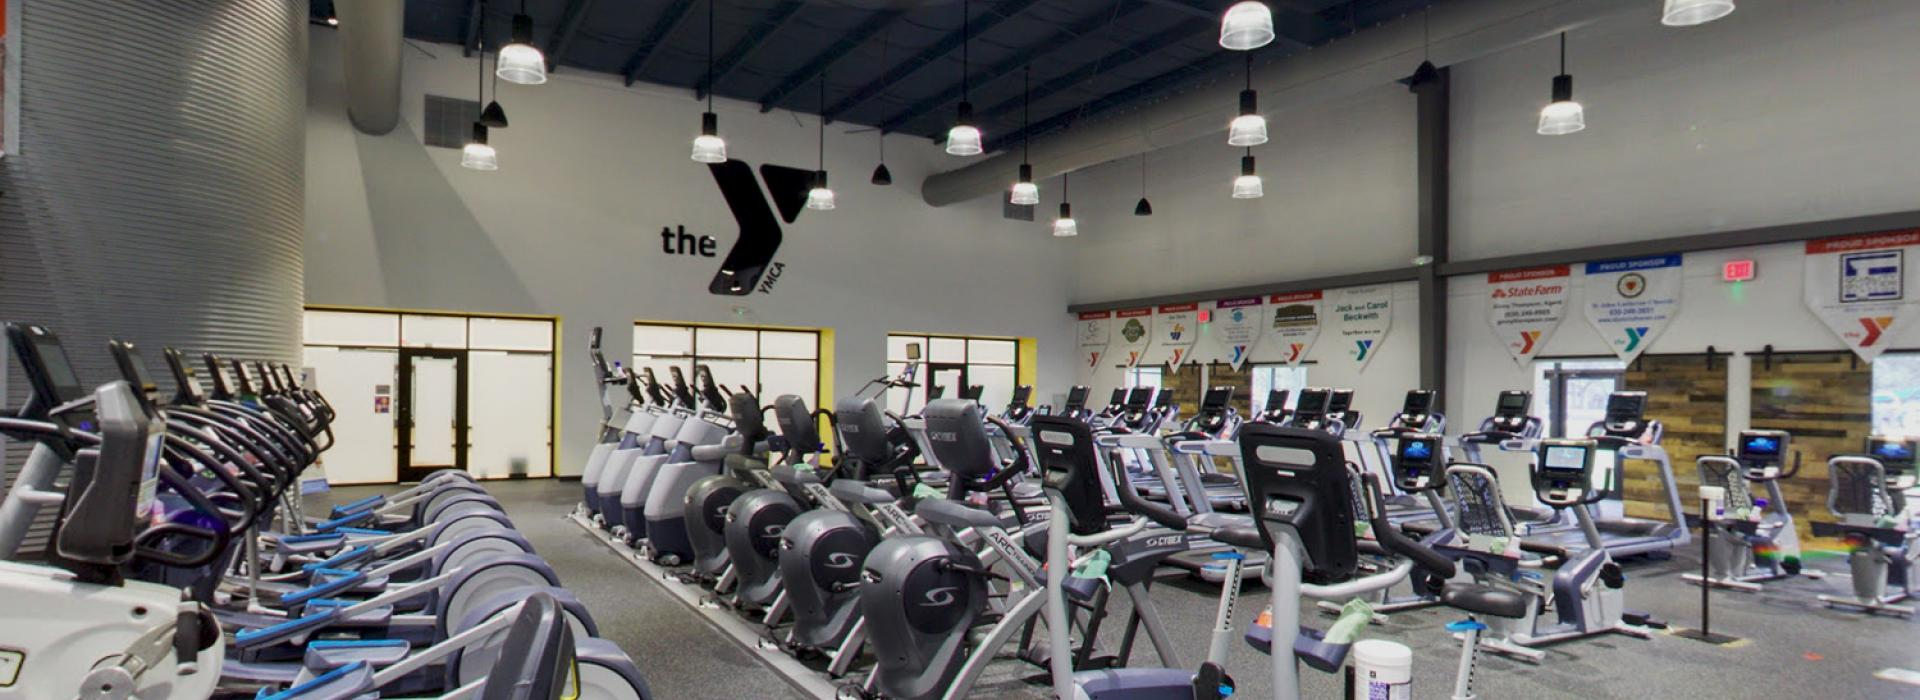 Boerne family ymca ymca of greater san antonio